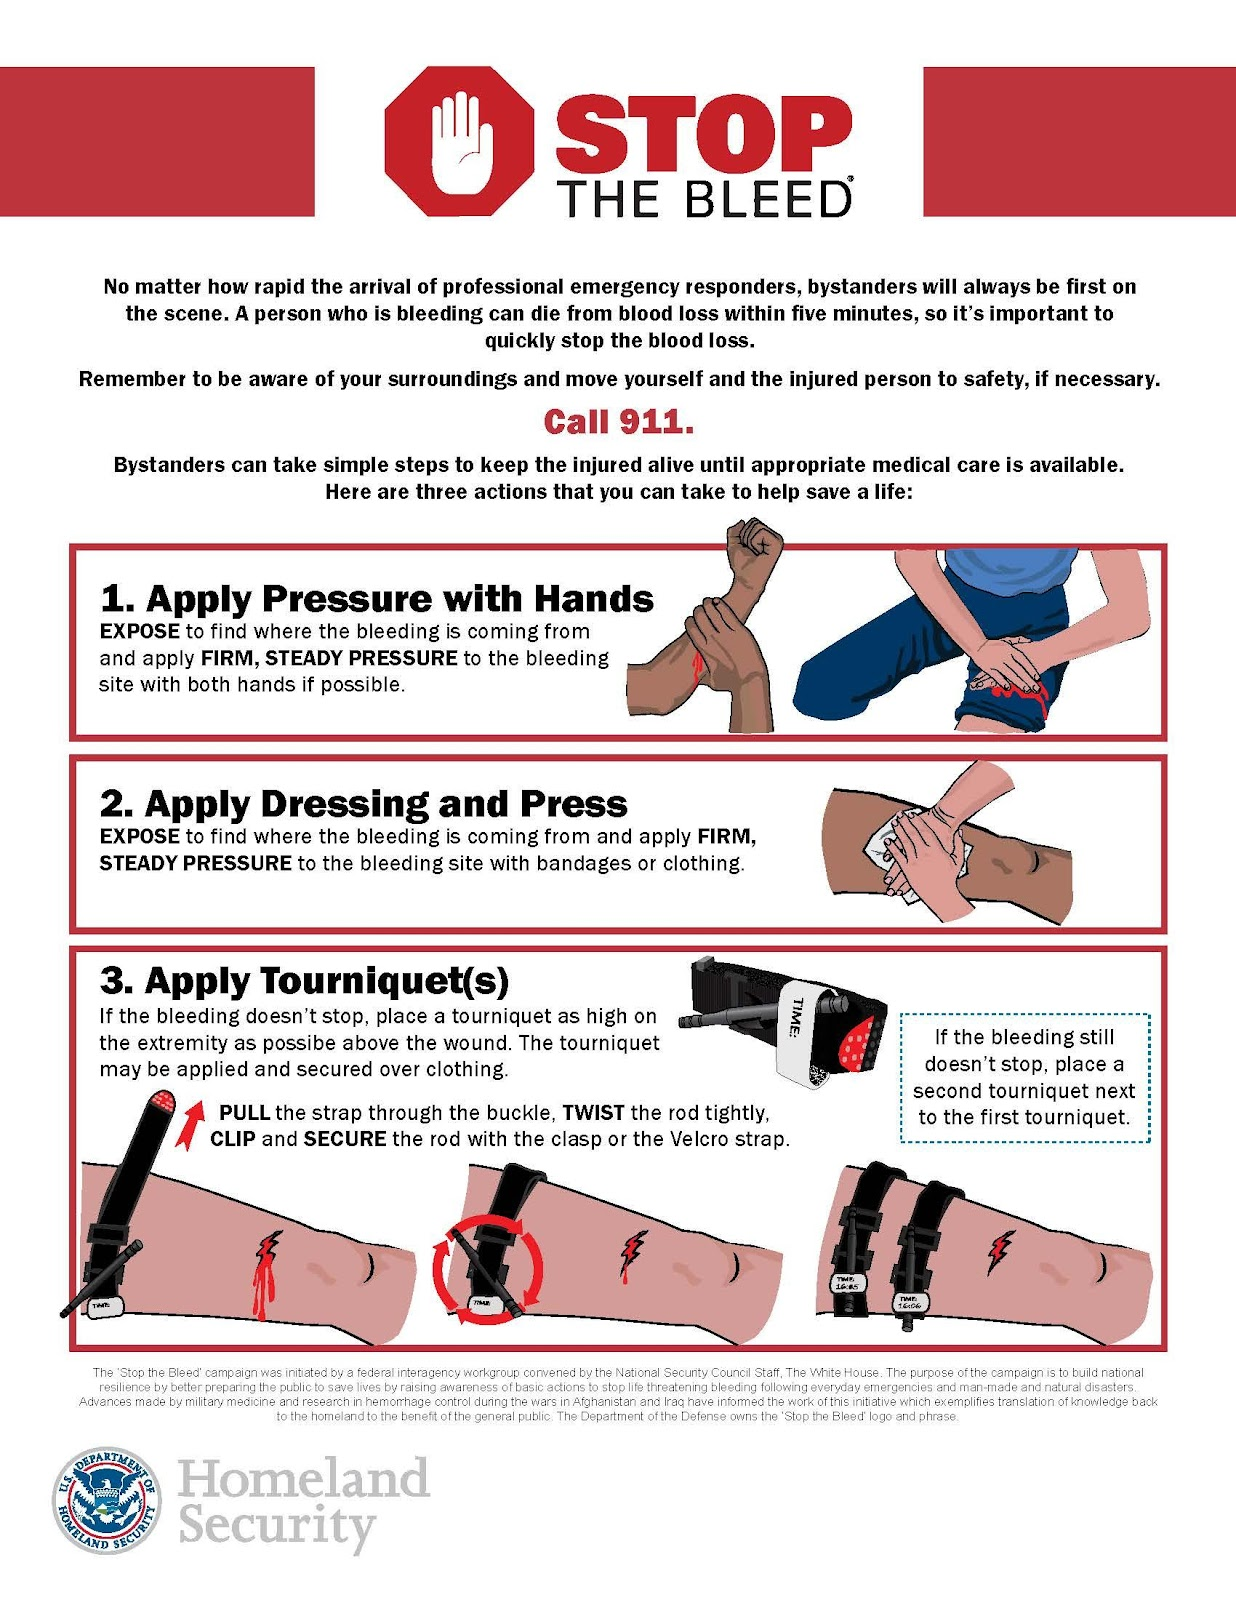 C:\Users\Asi\Desktop\16_1011_stopthebleed_infographic_full.jpg